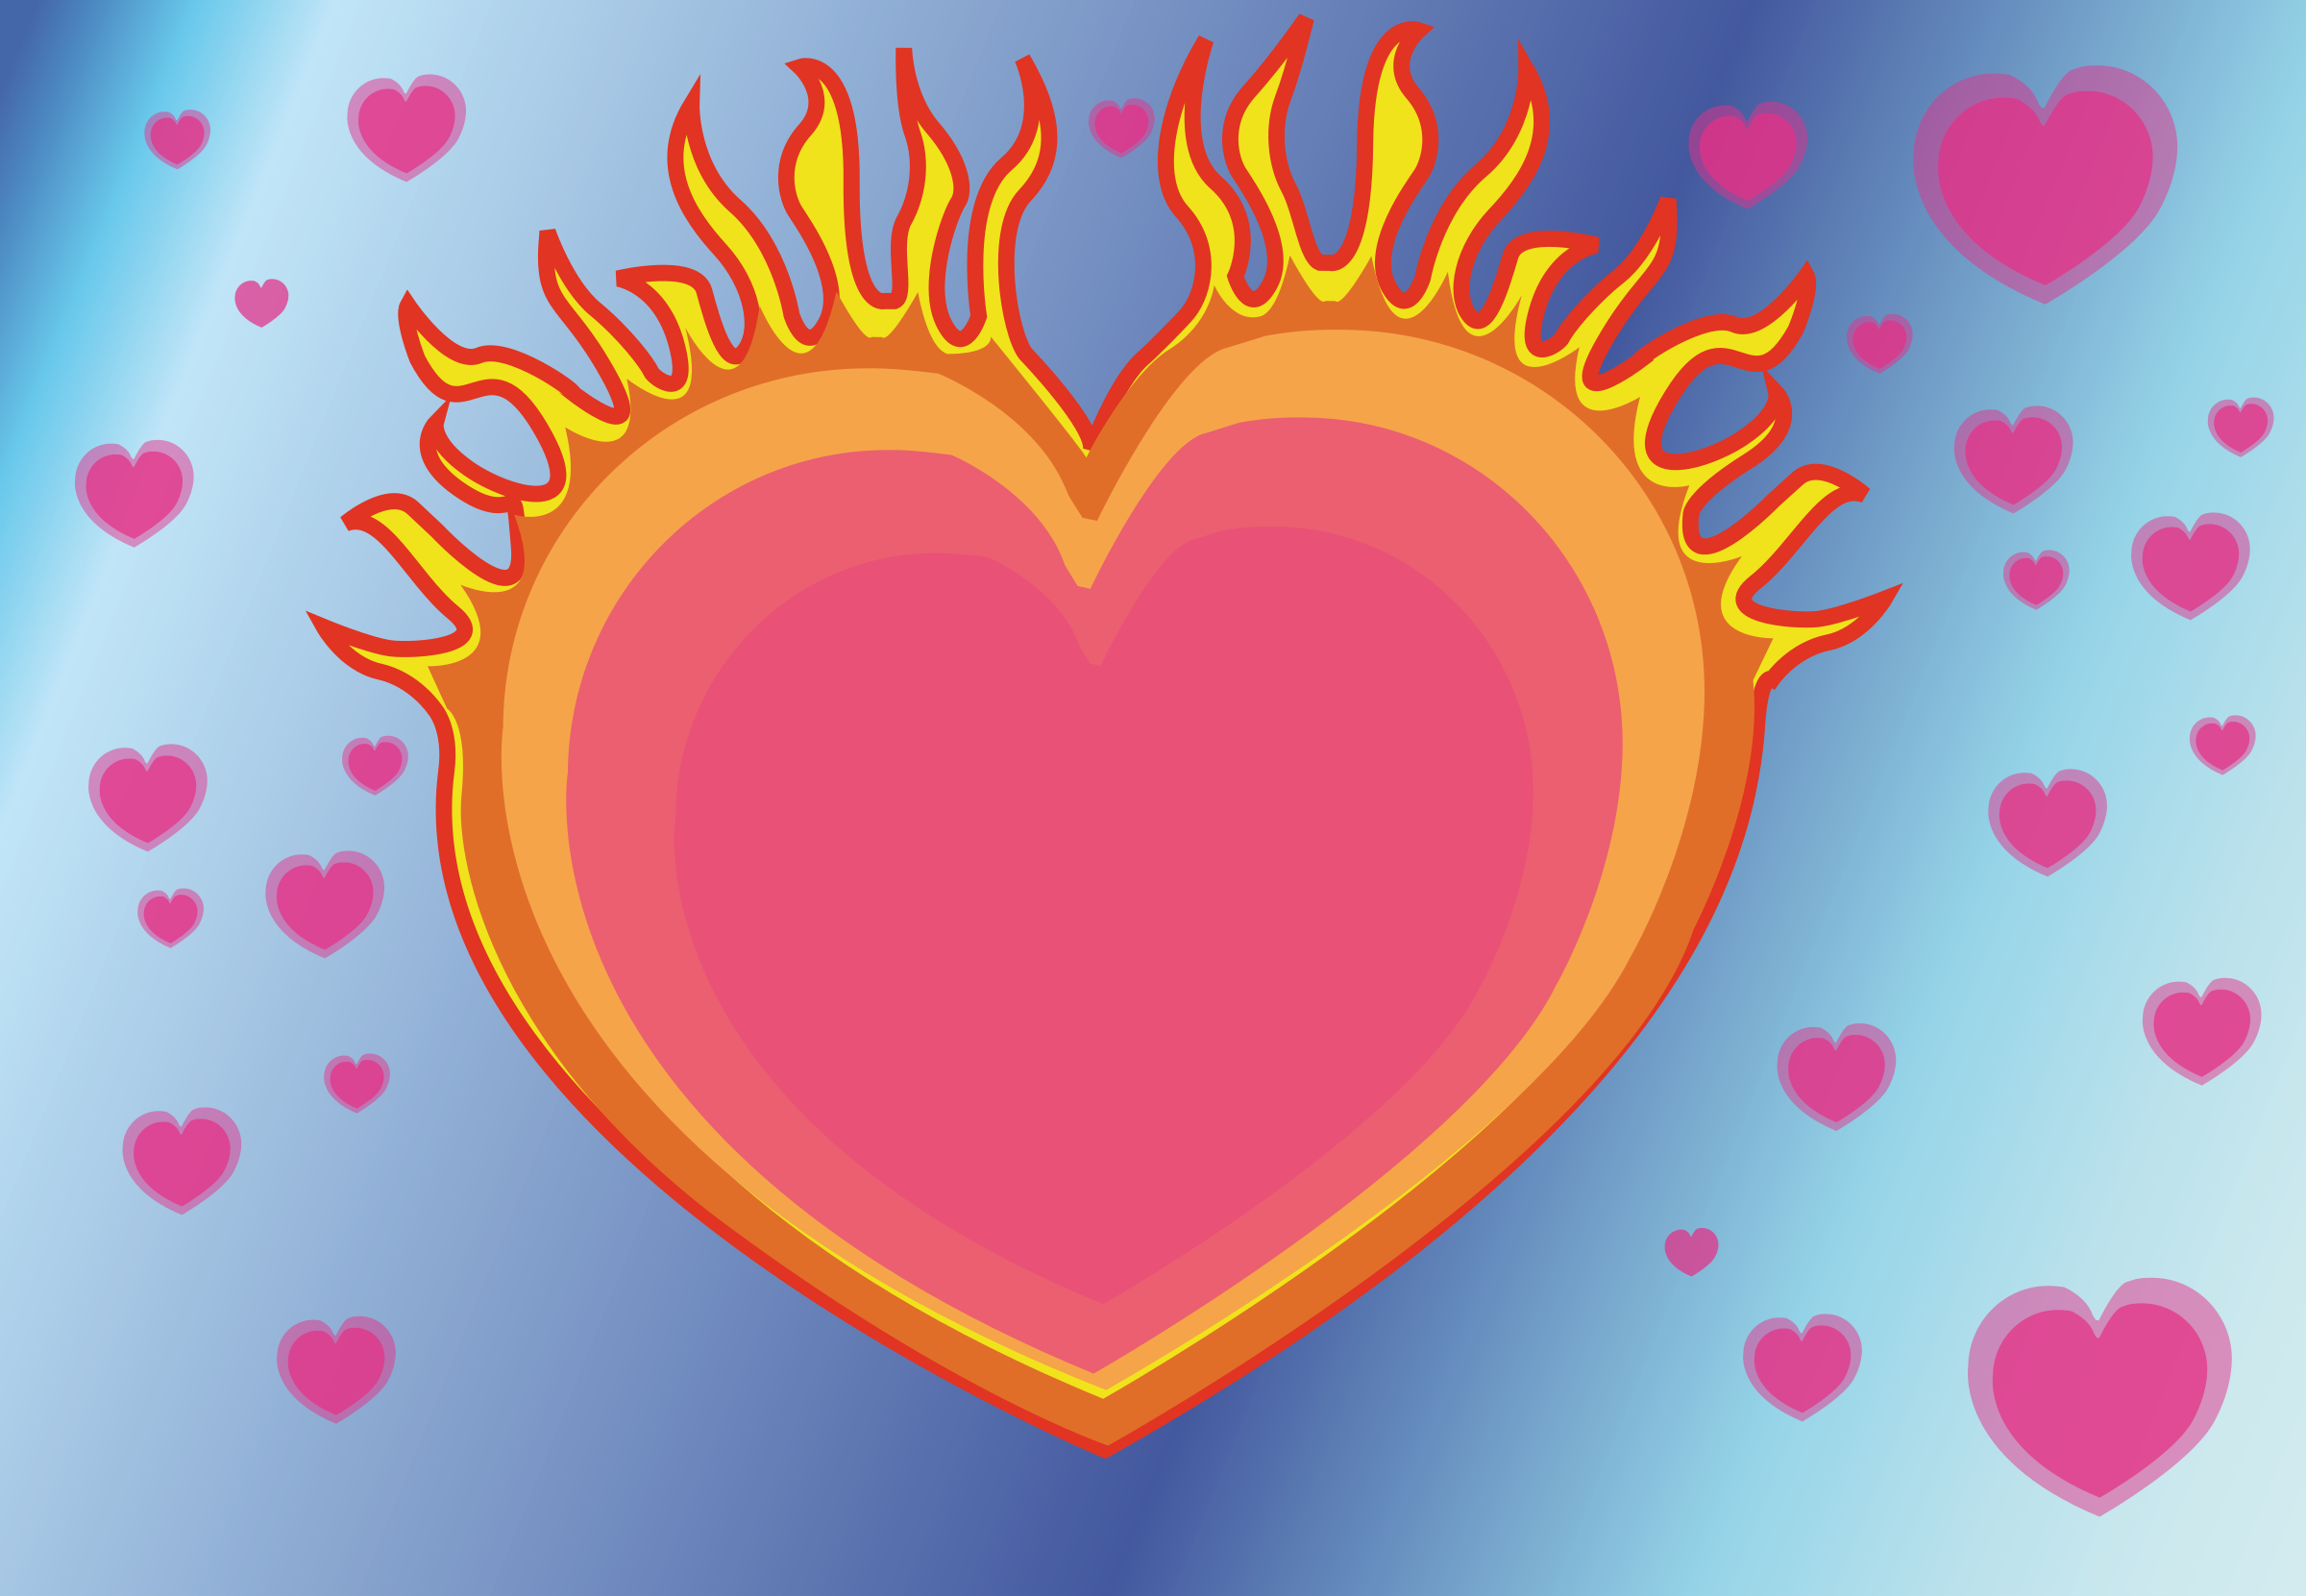 Circle clipart fire. Heart on big image